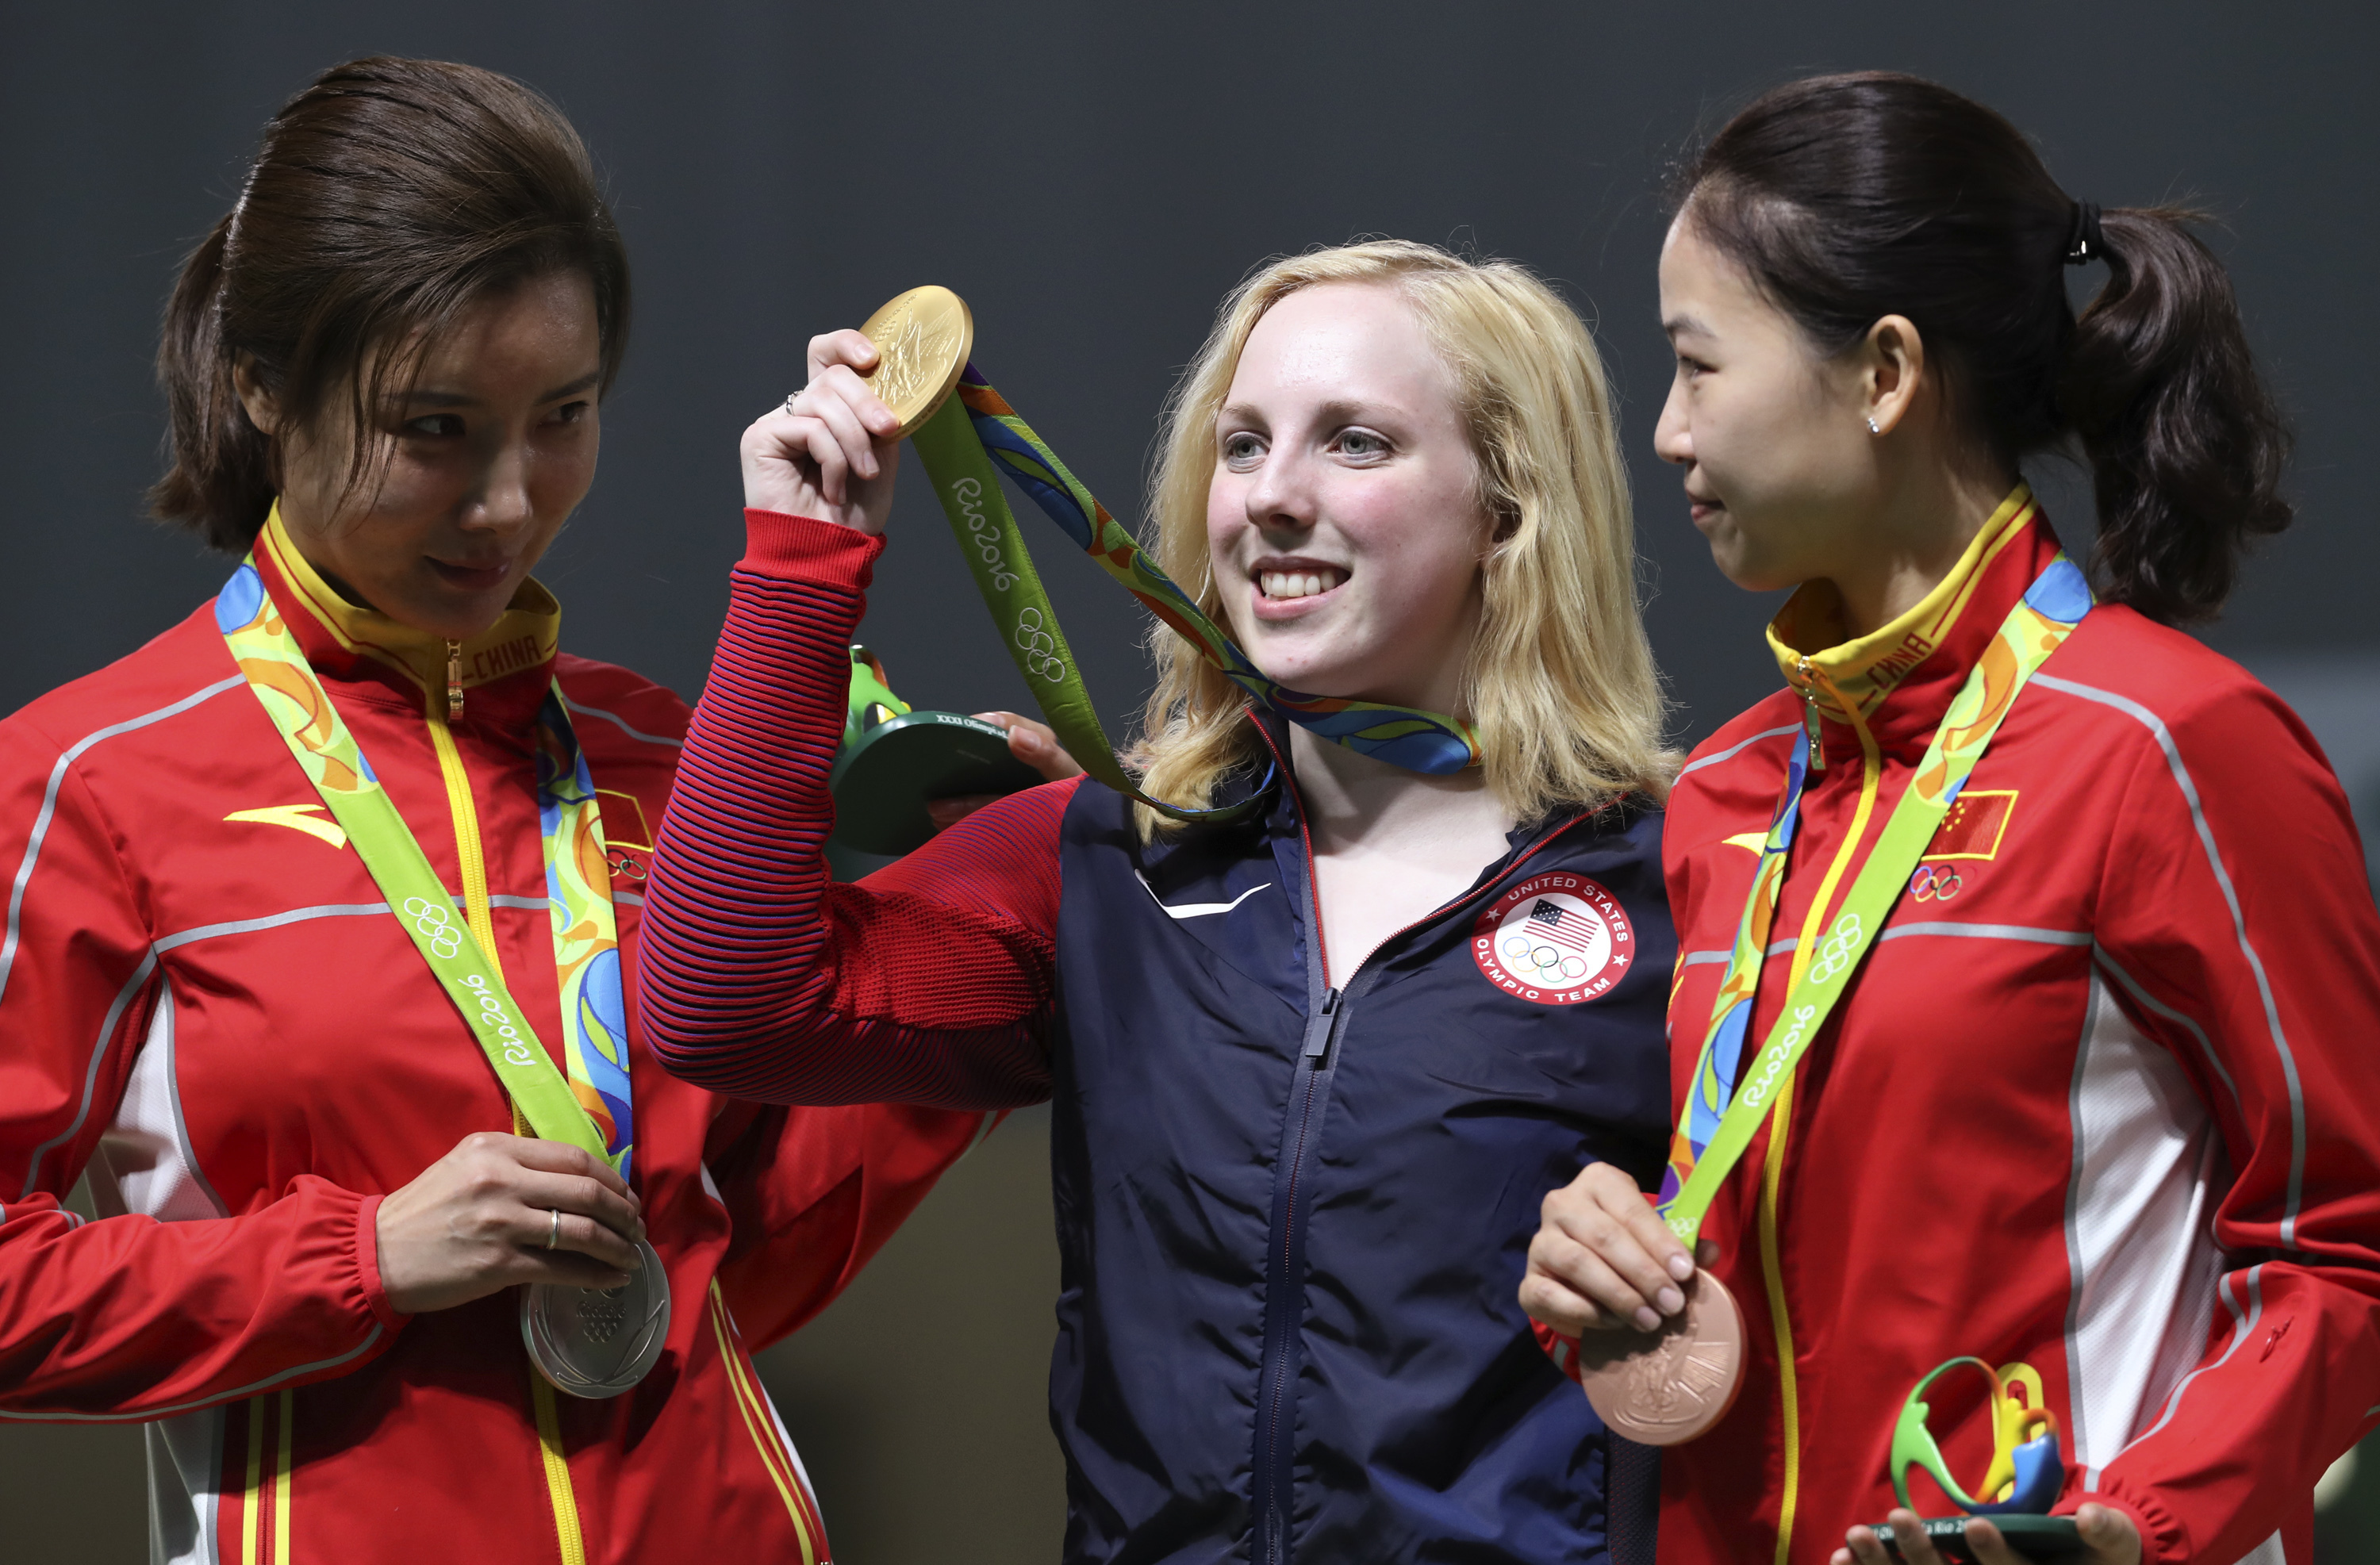 Virginia Thrasher, center, of the United States holds her gold medal for the Women's 10m Air Rifle competition during the award ceremony with the runner-up Du li, left, of China and third place Yi Siling, right, of China at Olympic Shooting Center at the 2016 Summer Olympics in Rio de Janeiro, Brazil, Saturday, Aug. 6, 2016. ()